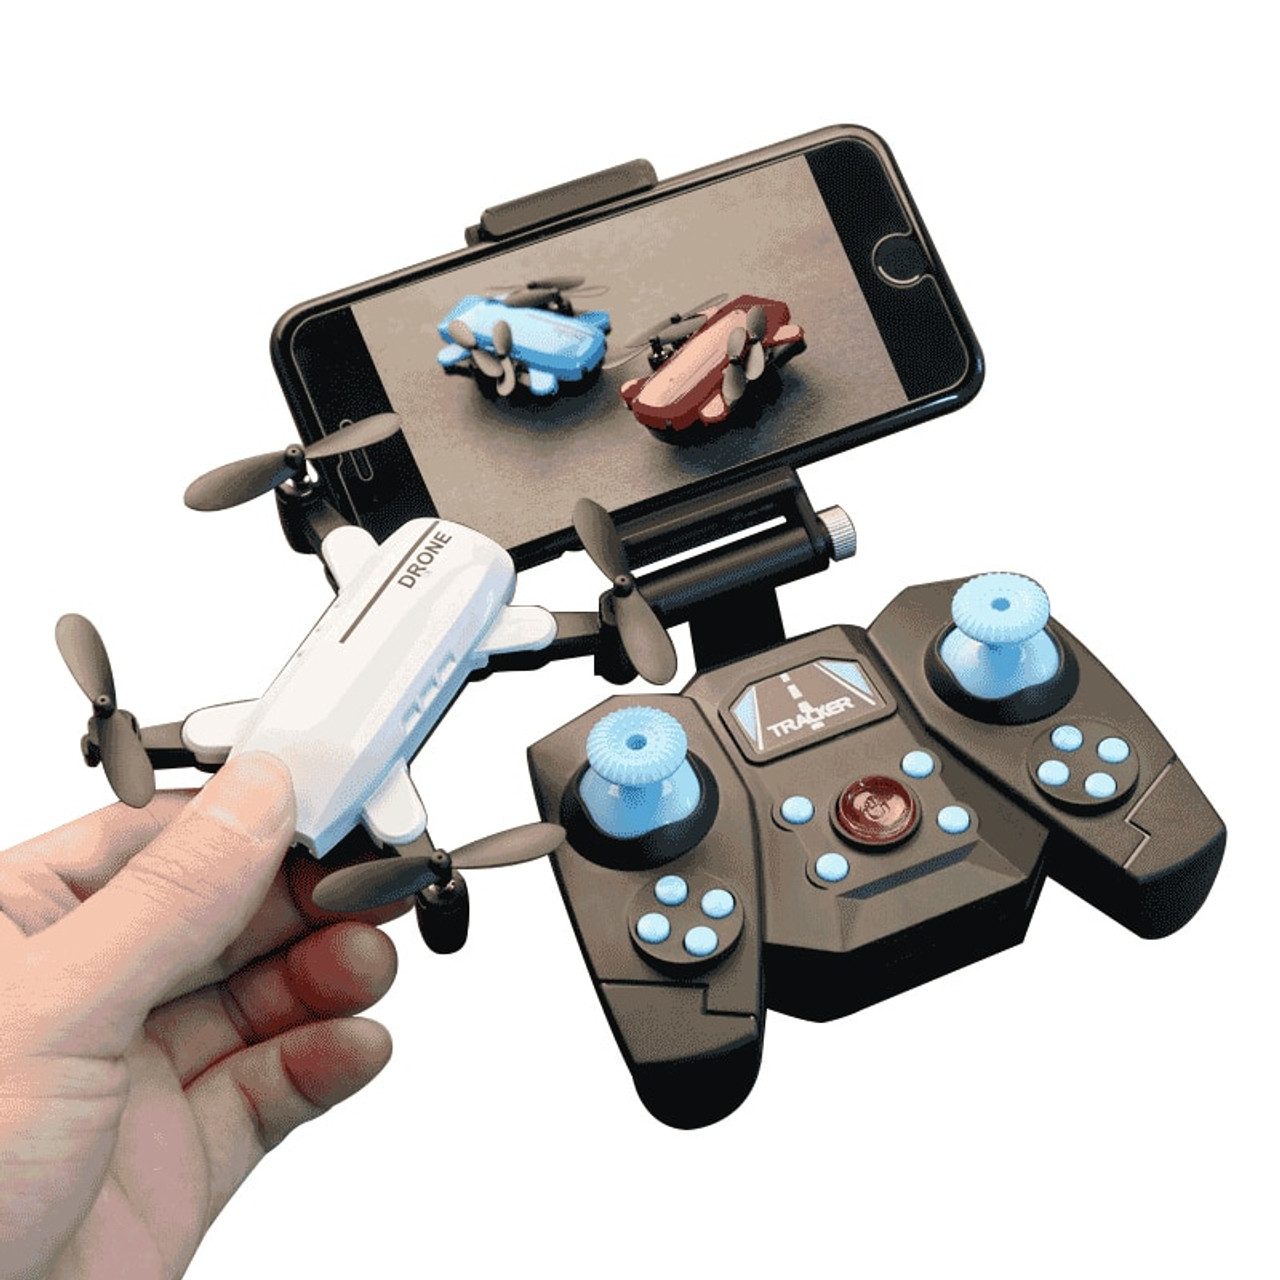 Dron - Page 4 Foldable-RC-Mini-Drone-Pocket-Drone-RC-Quadcopter-With-0-3MP-HD-Camera-Altitude-Hold-Wifi__01736.1547879768